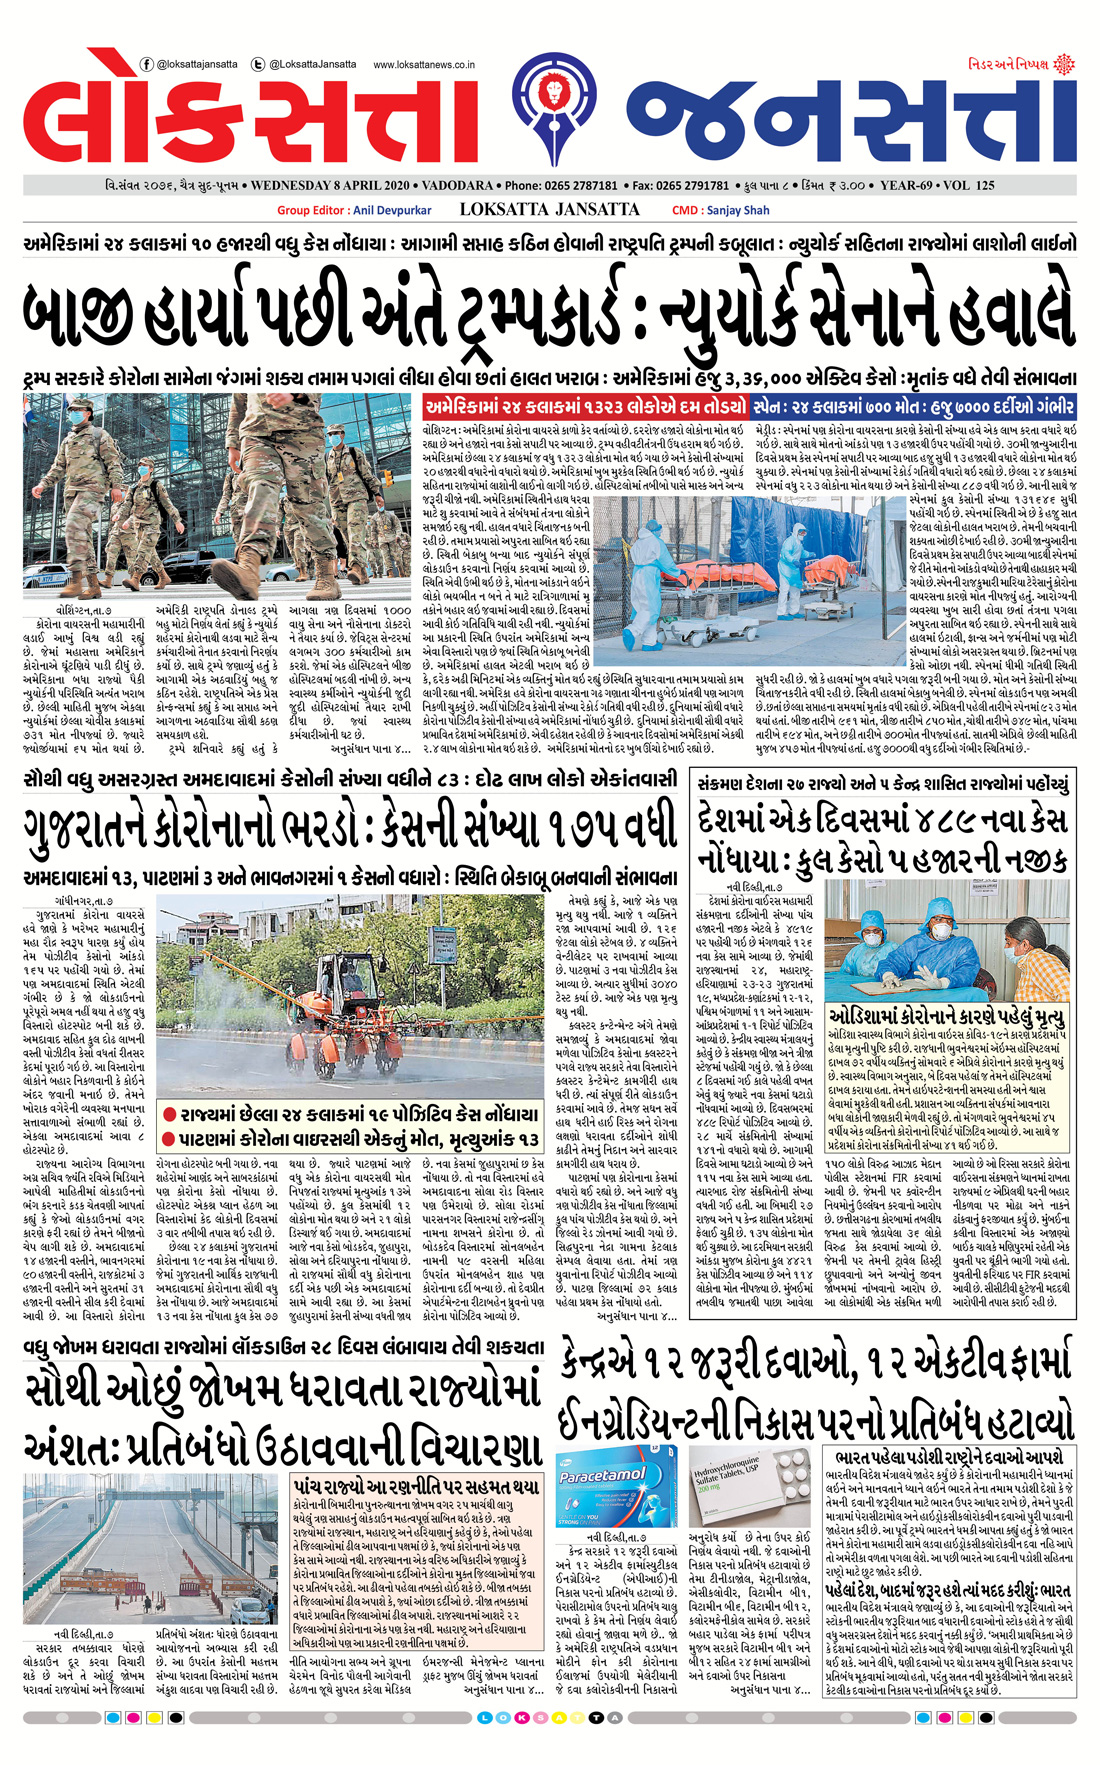 Loksatta Jansatta News Papaer E-paper dated 2020-04-08 | Page 1